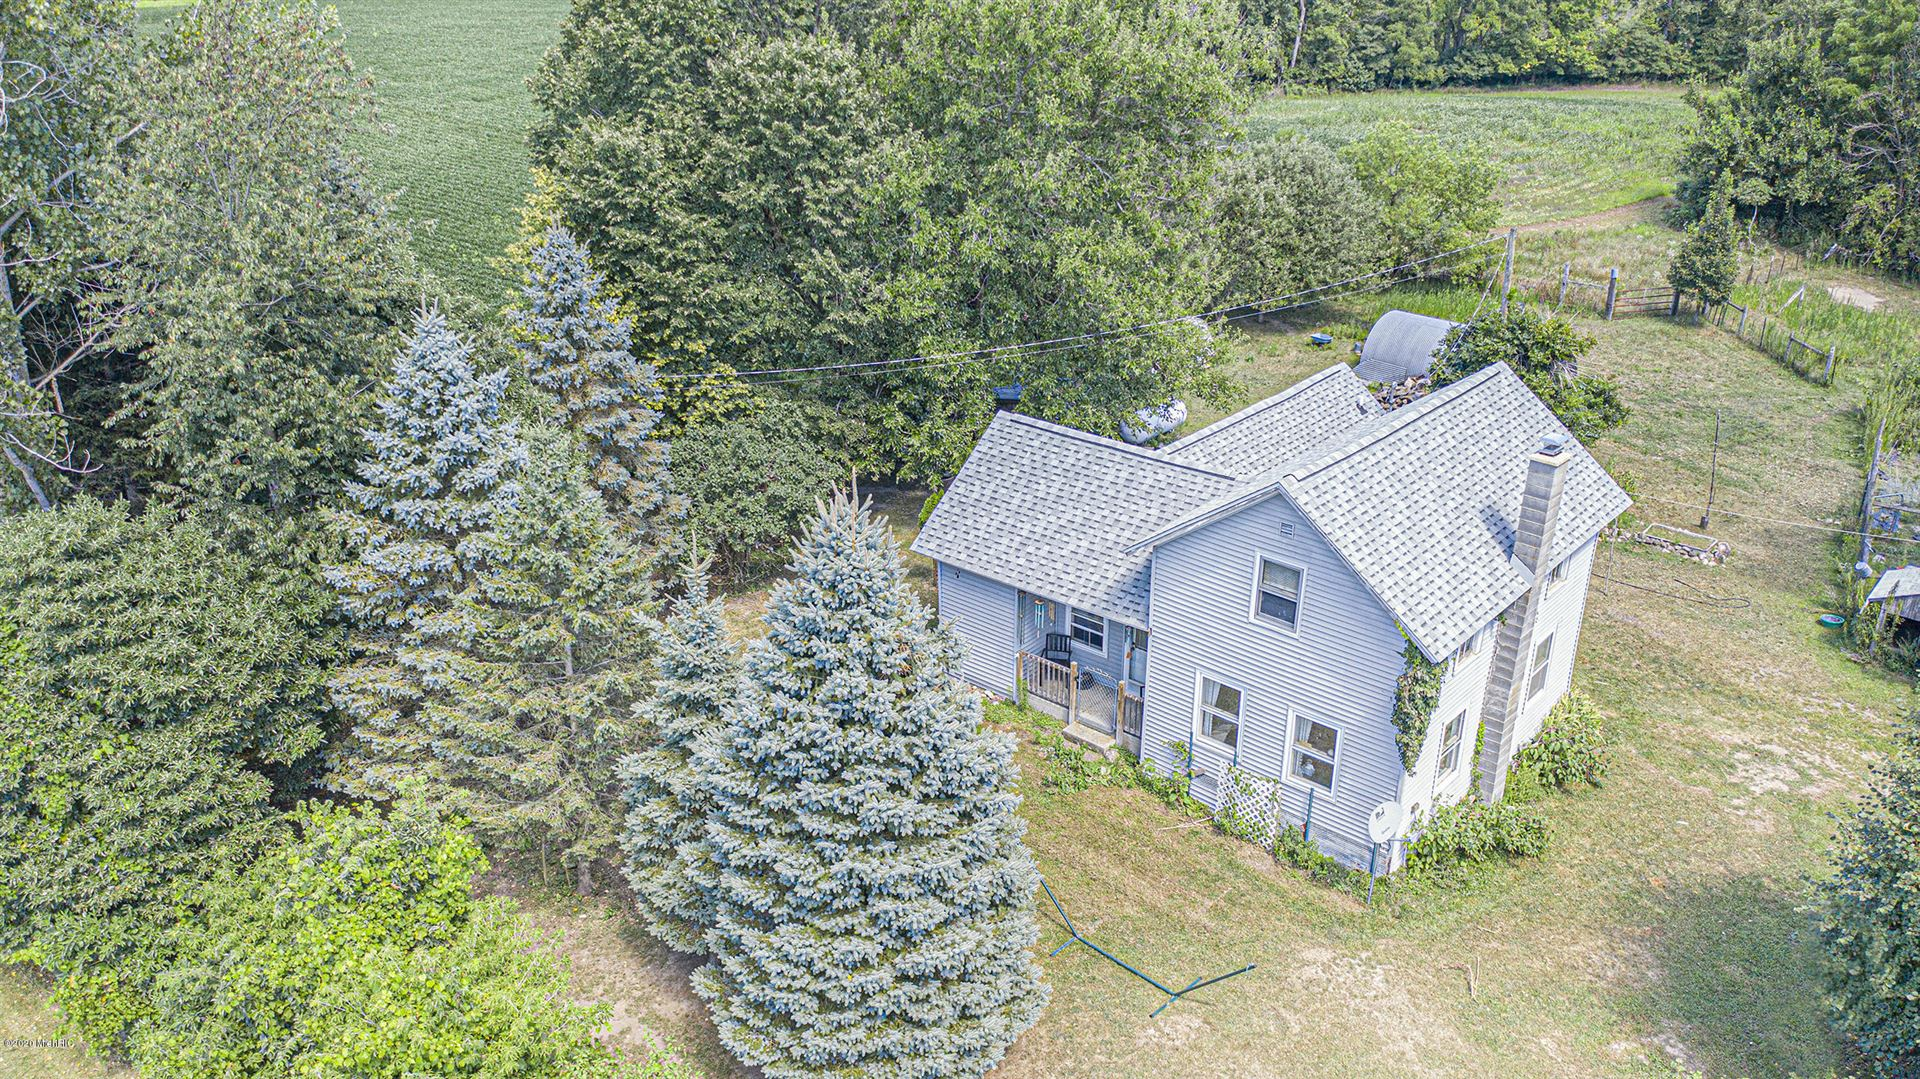 65147 Calvin Center Road, Cassopolis, MI 49031 - MLS#: 20041436